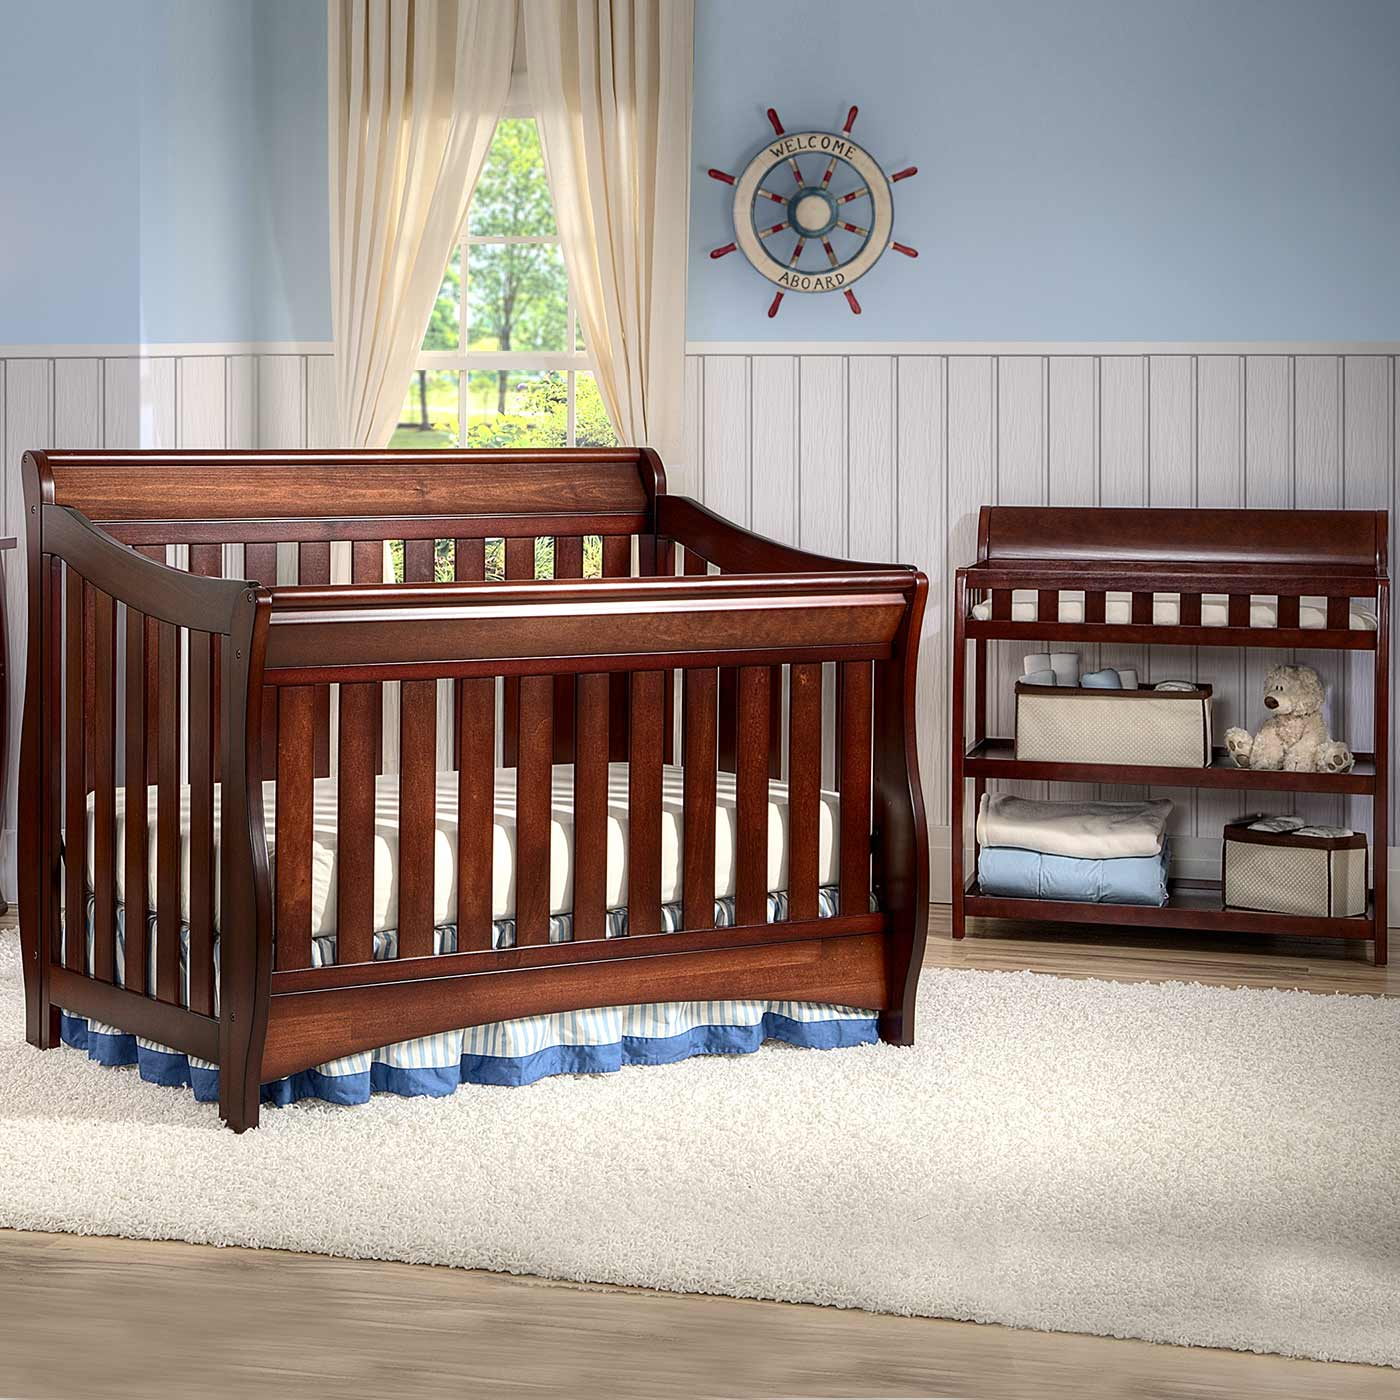 Delta Bentley 2 Piece Nursery Set   Convertible Crib And Changing Table In  Black Cherry Espresso FREE SHIPPING